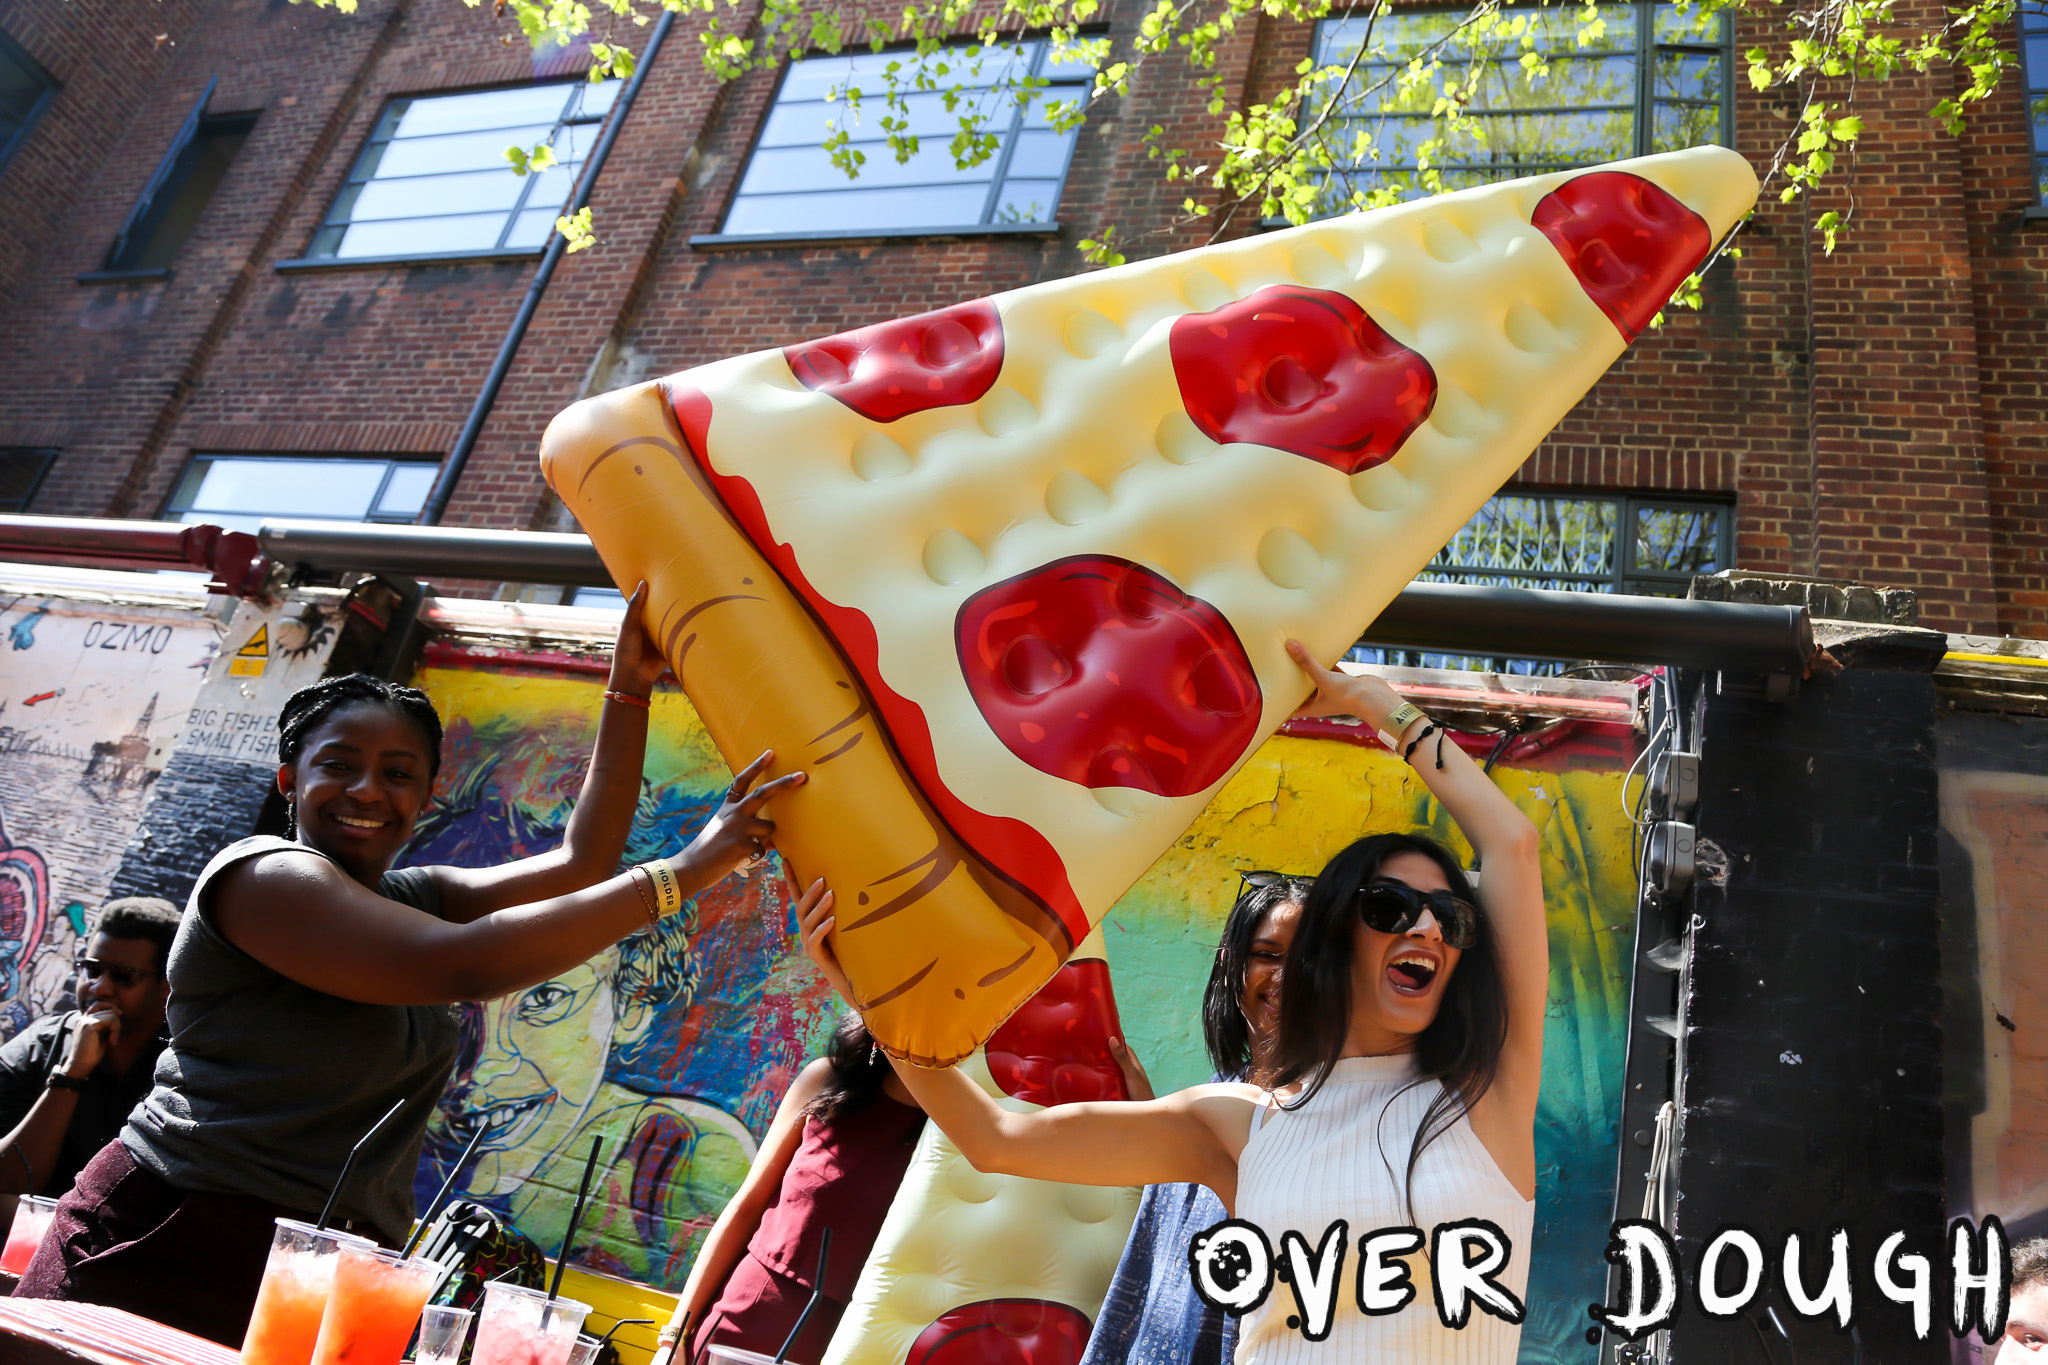 Overdough - the pizza party!